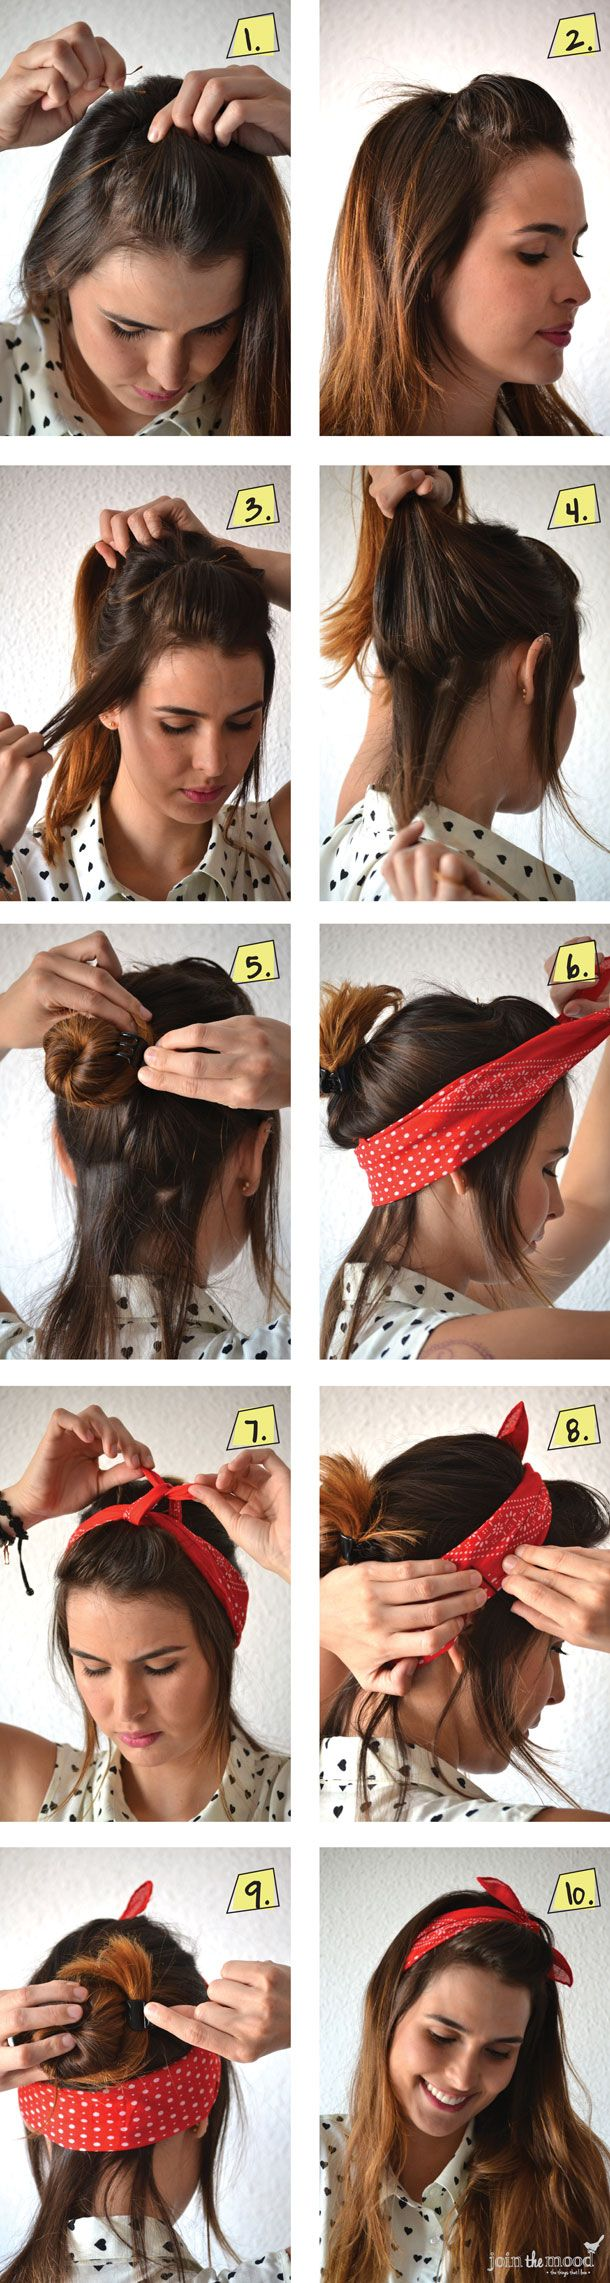 14 tutorials for bandana hairstyles - pretty designs